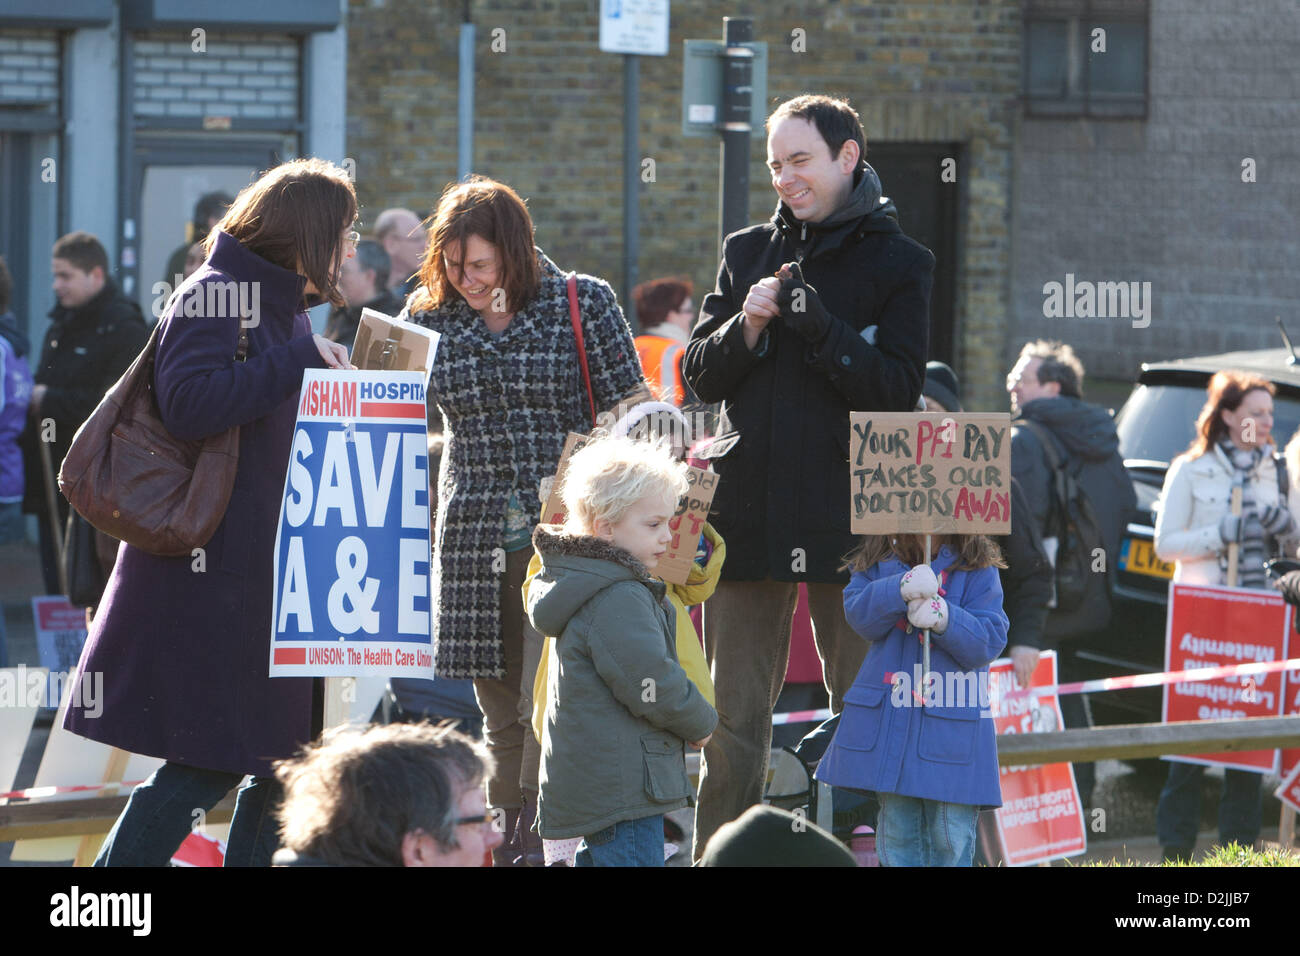 London UK. 26th January 2013. . Thousands of local people prepare to mobilise for a march and rally in opposition - Stock Image